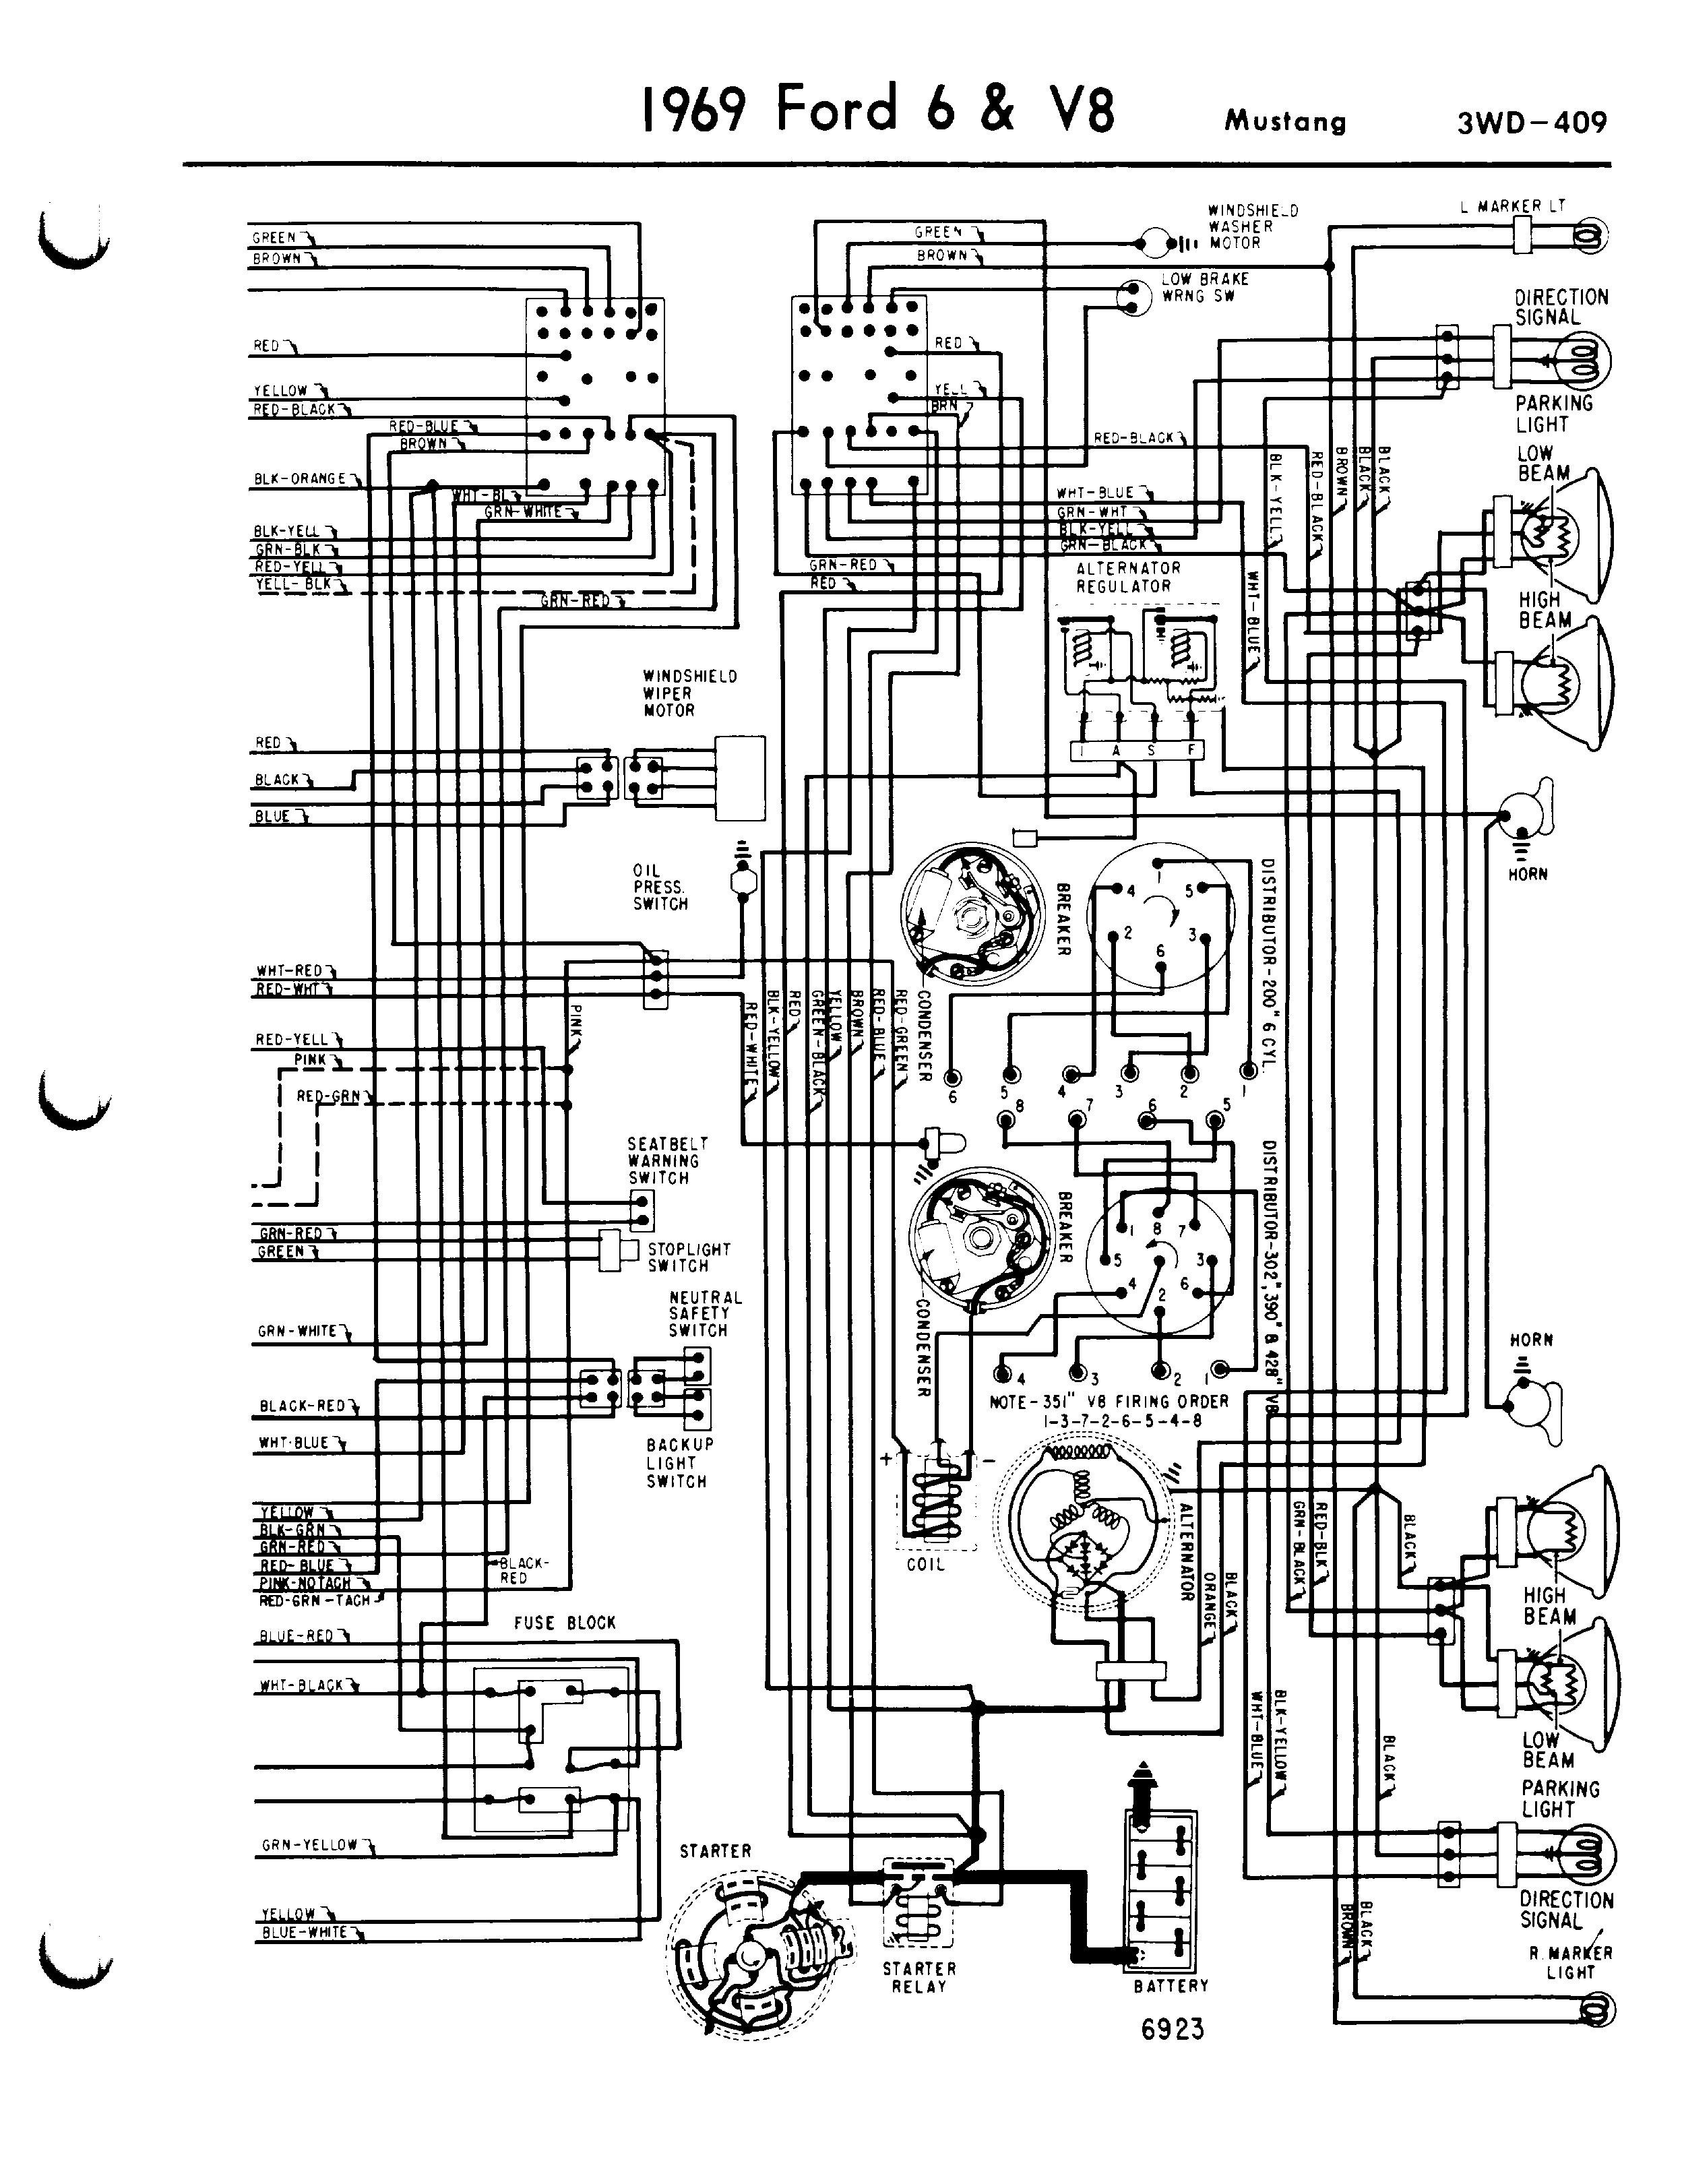 1969 Ford F 350 Wiring Diagram Trusted 1990 250 Mustang As Well 6 Inch Lift